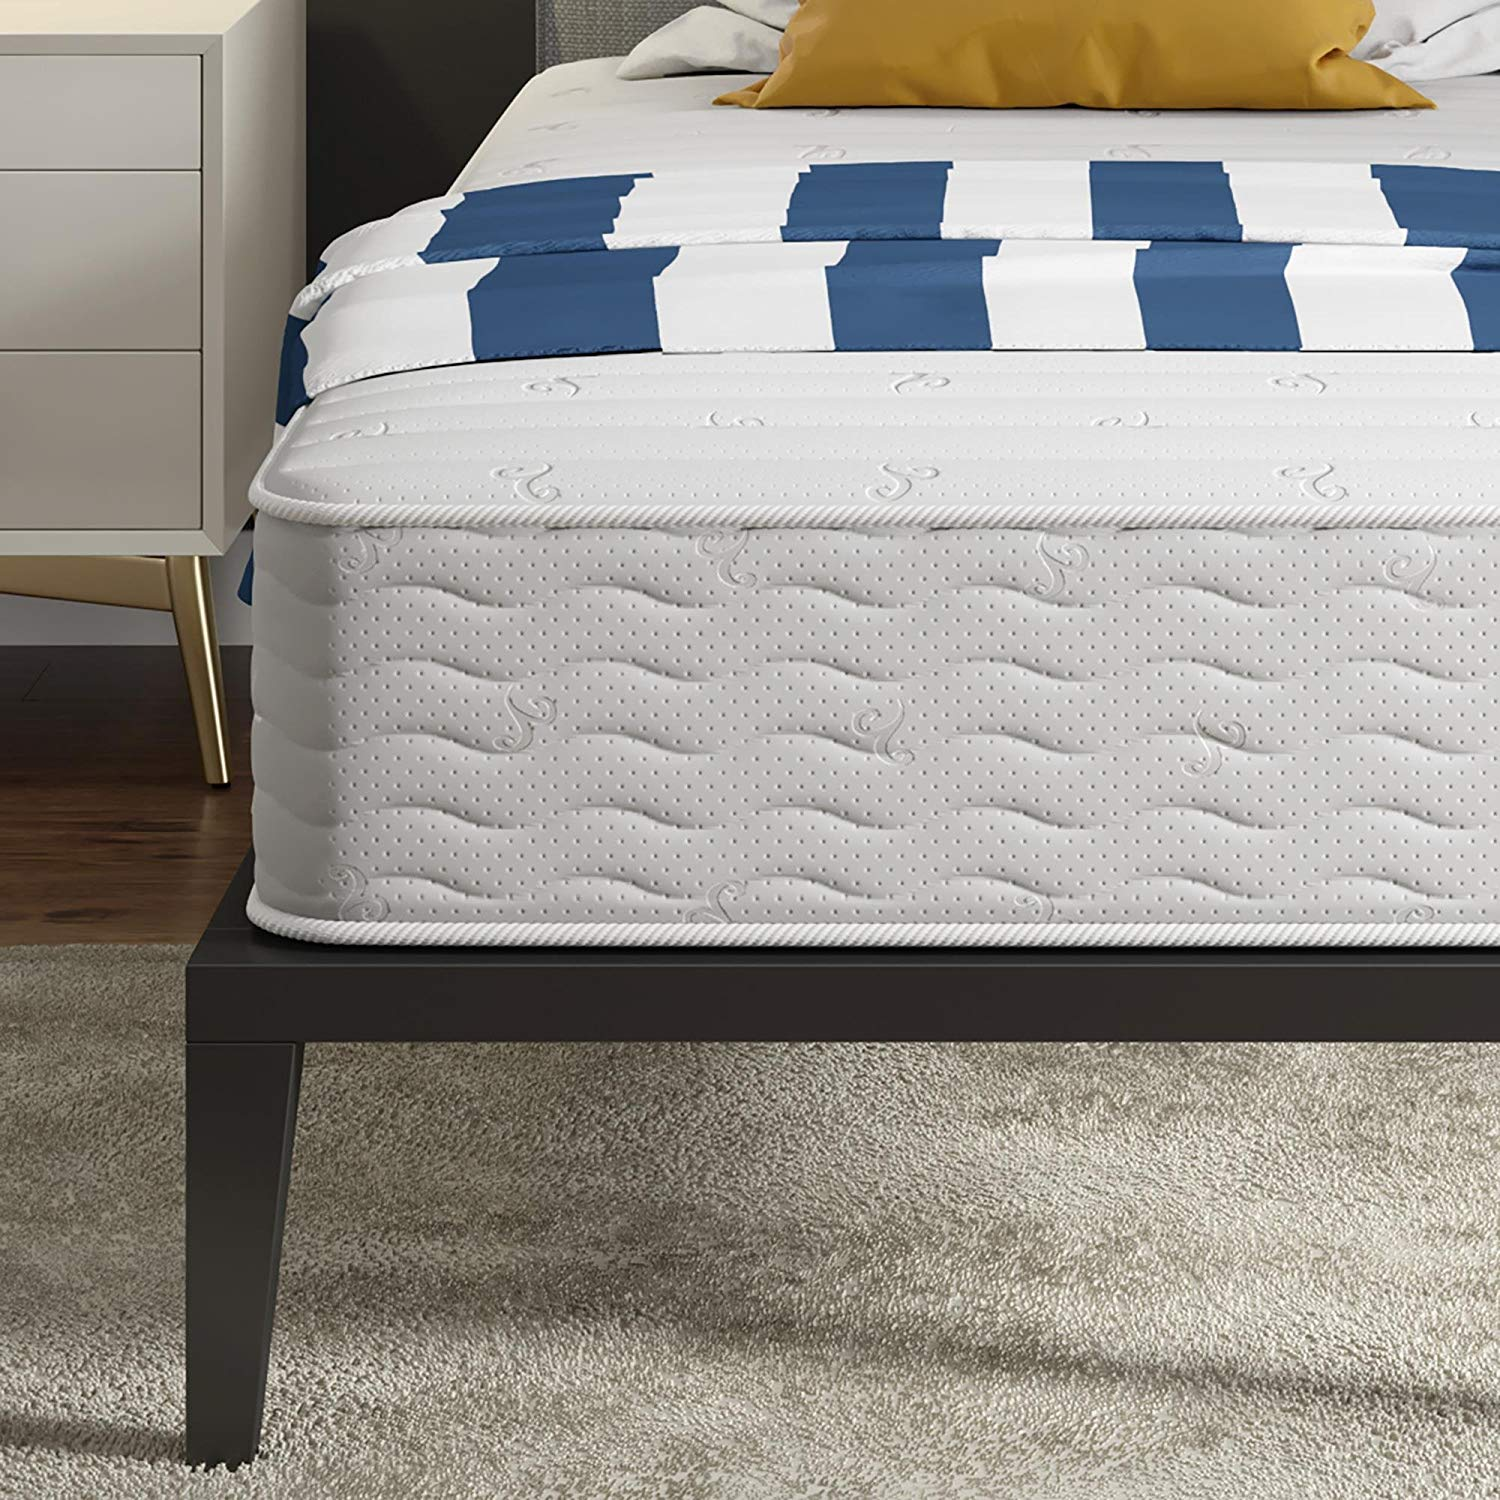 Signature Sleep Best Twin Mattress Review by www.snoremagazine.com